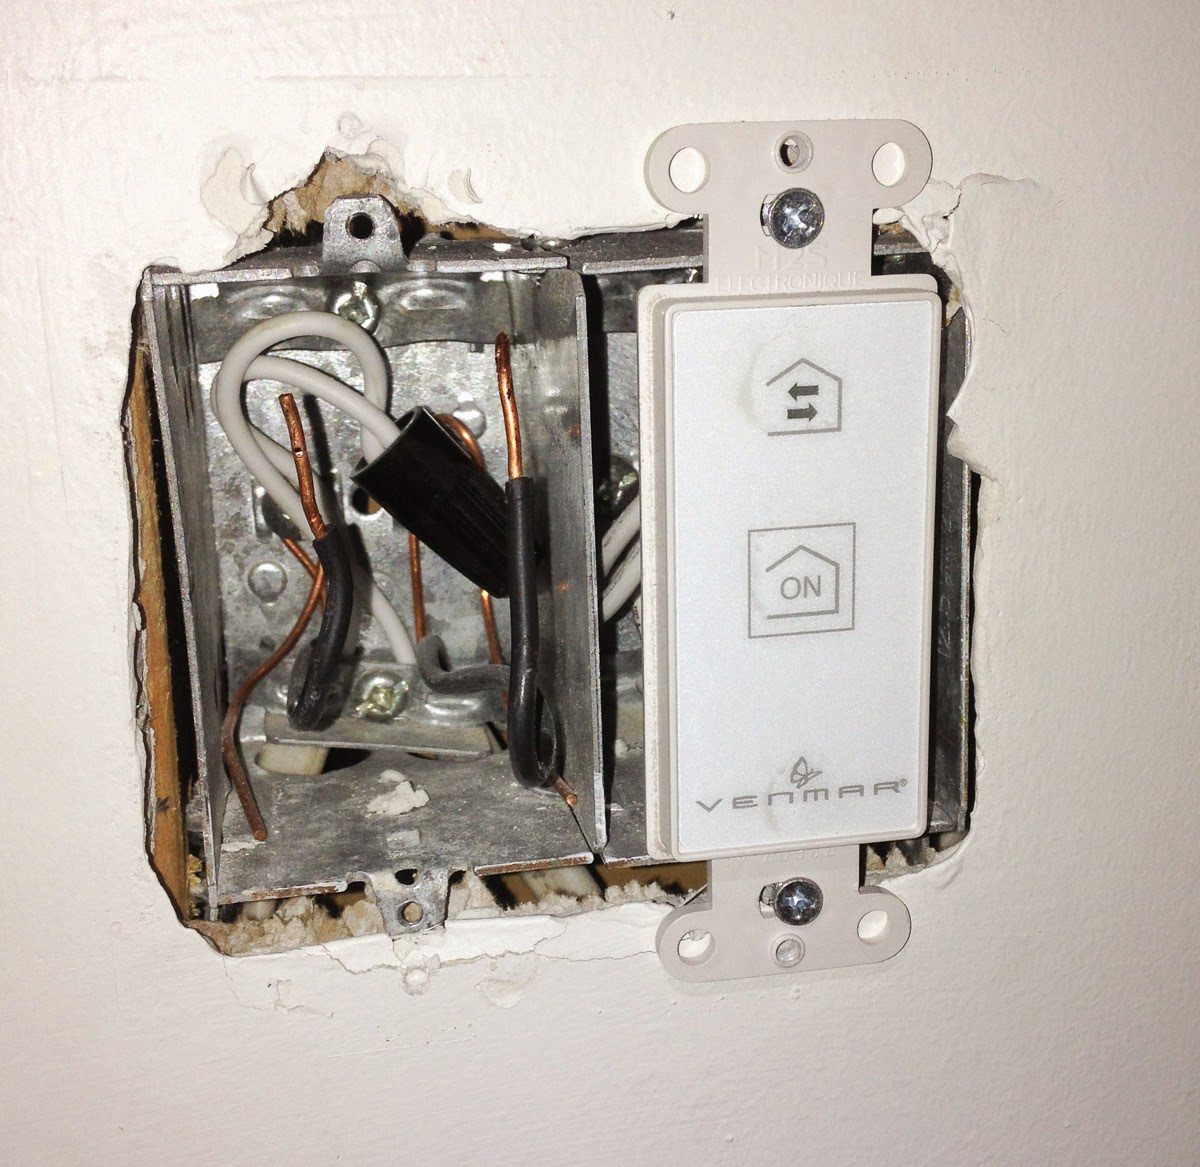 Low Voltage Switch Box : Glen s home automation building a new house or doing